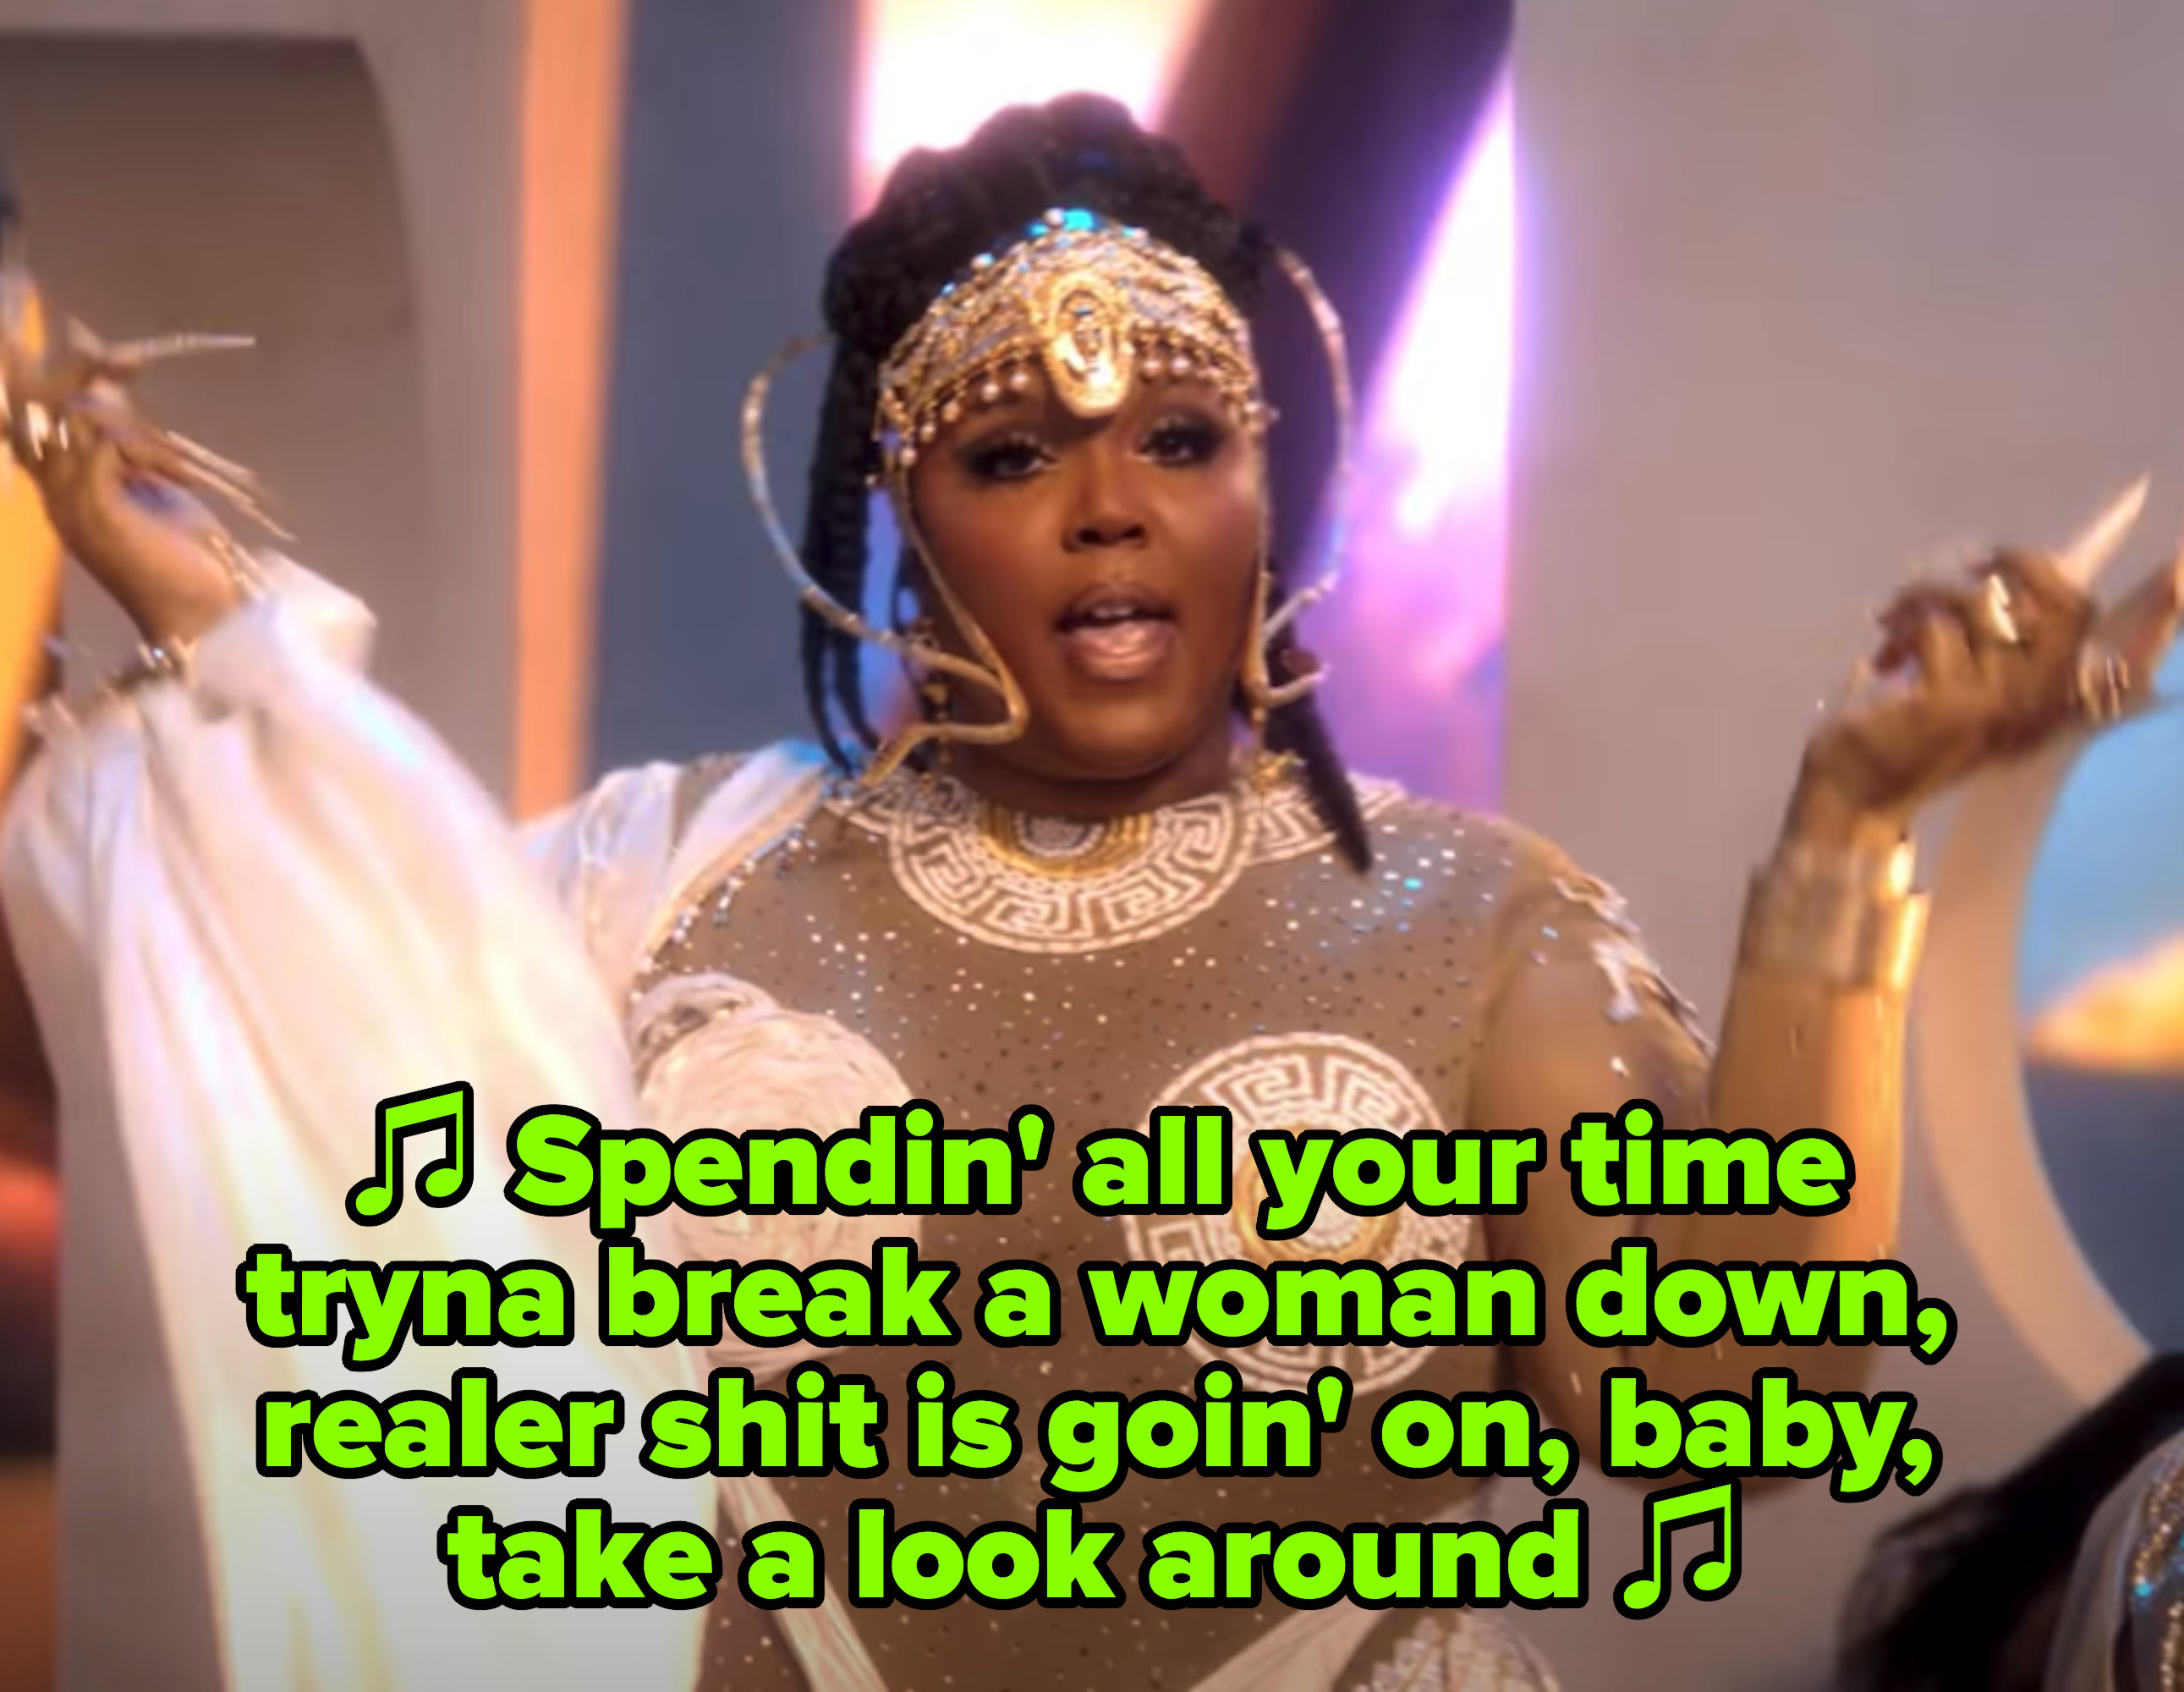 """Lizzo in her """"Rumors"""" music video singing: """"Spendin' all your time tryna break a woman down, realer shit is goin' on, baby, take a look around"""""""